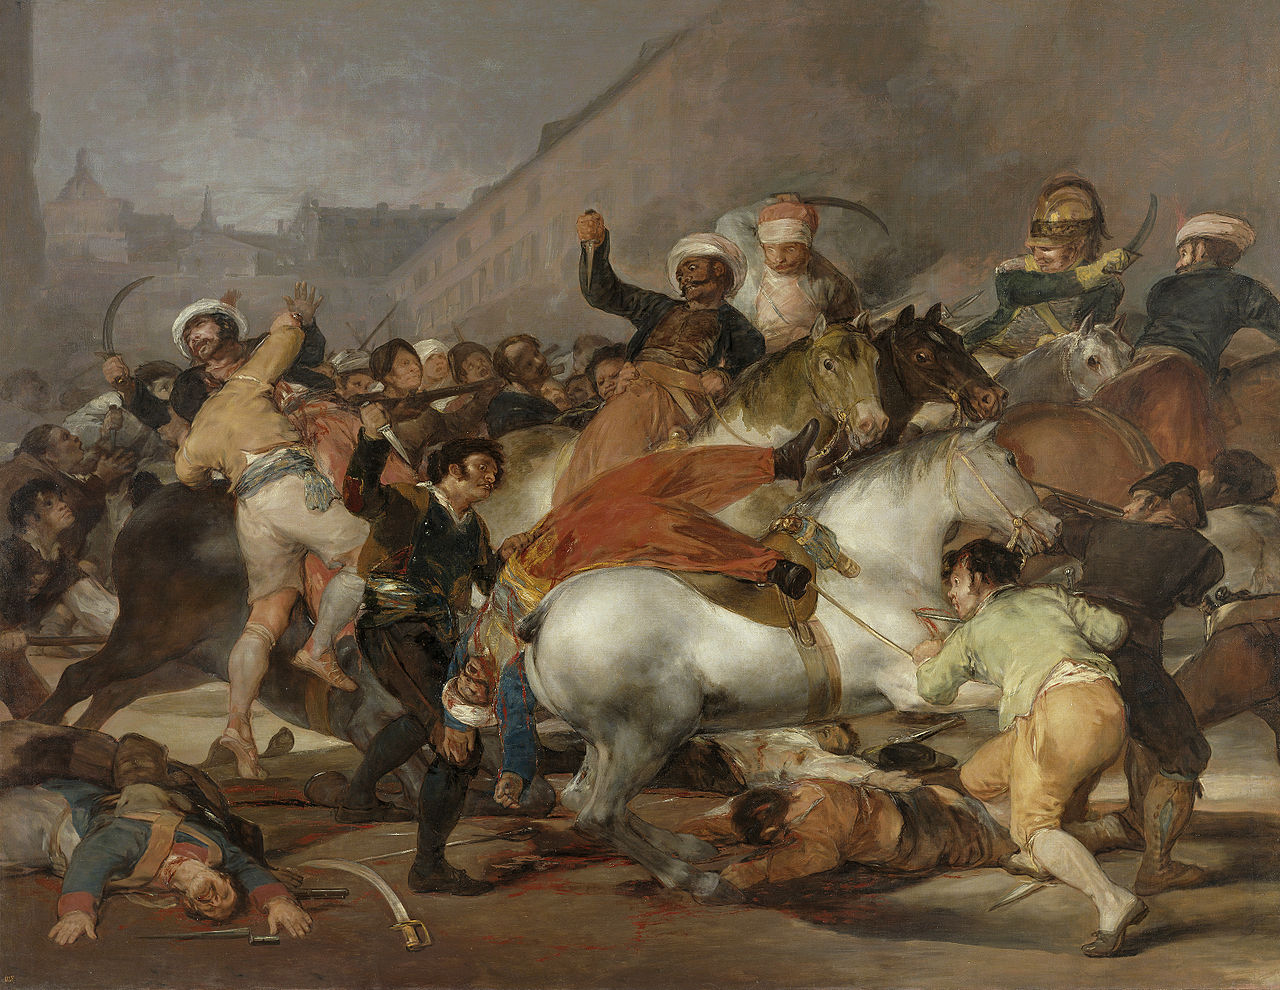 Goya's El dos de mayo de 1808 in the Prado Museum, Madrid